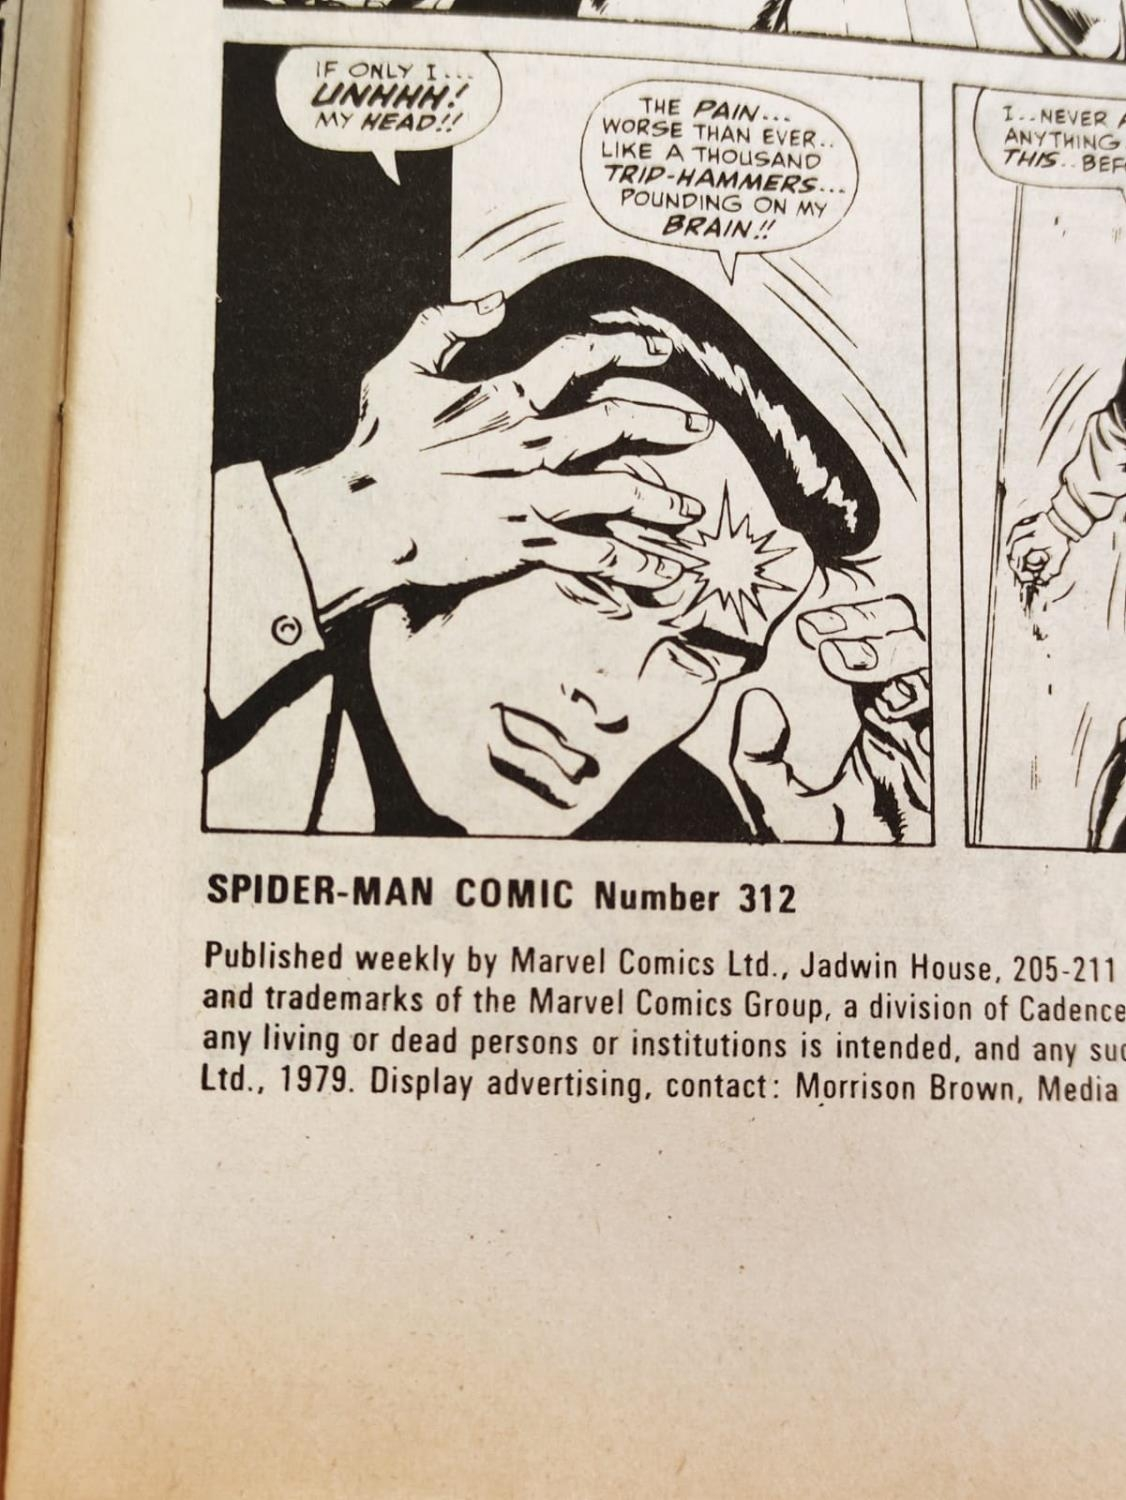 20 editions of mixed Vintage Marvel Comics. - Image 29 of 56